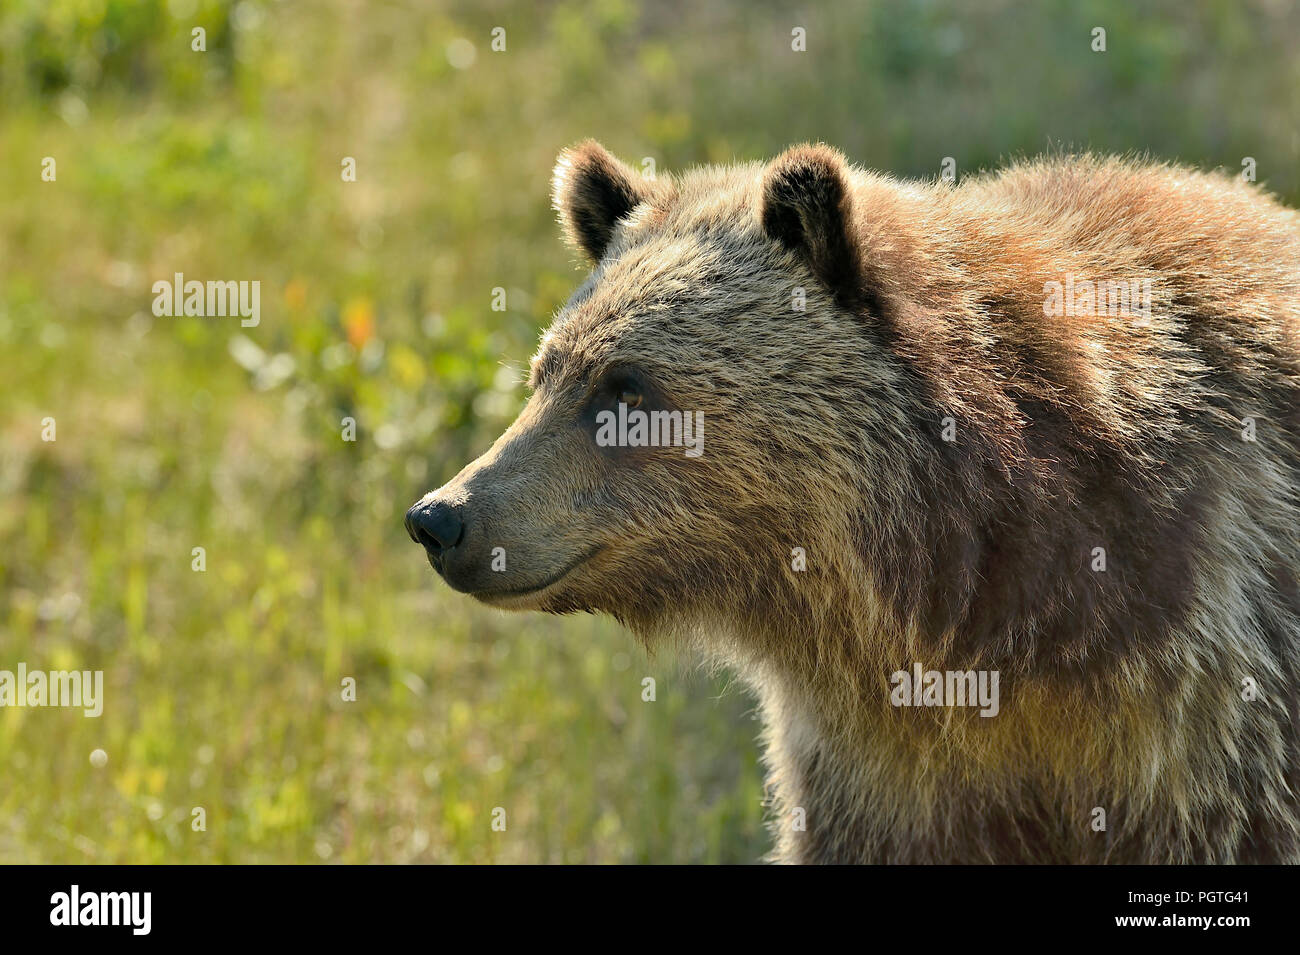 A close up portrait image of a young grizzly bear  (Ursus arctos); in rural Alberta Canada. Stock Photo